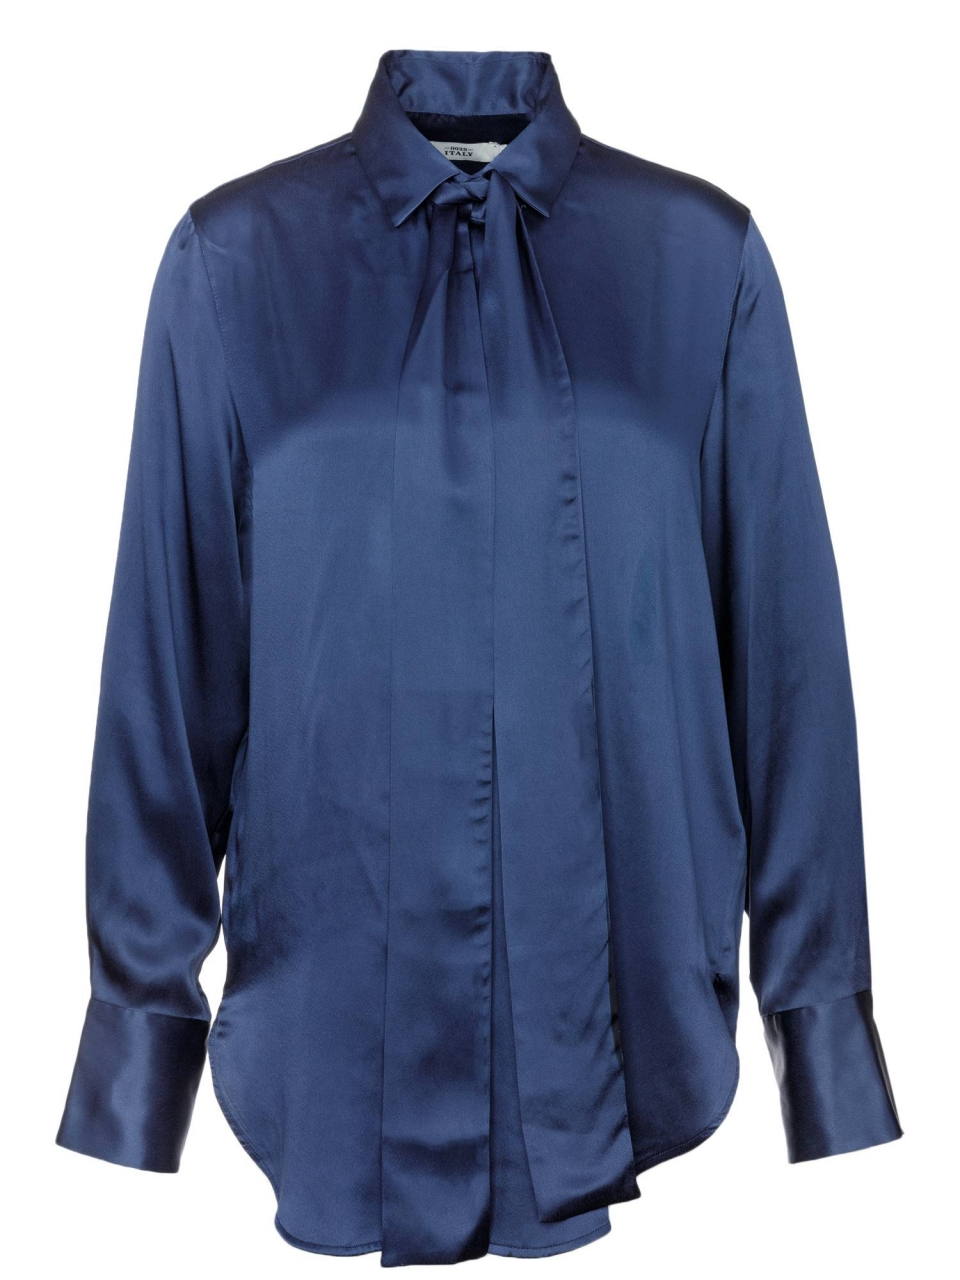 0039 ITALY Bluse Odelia